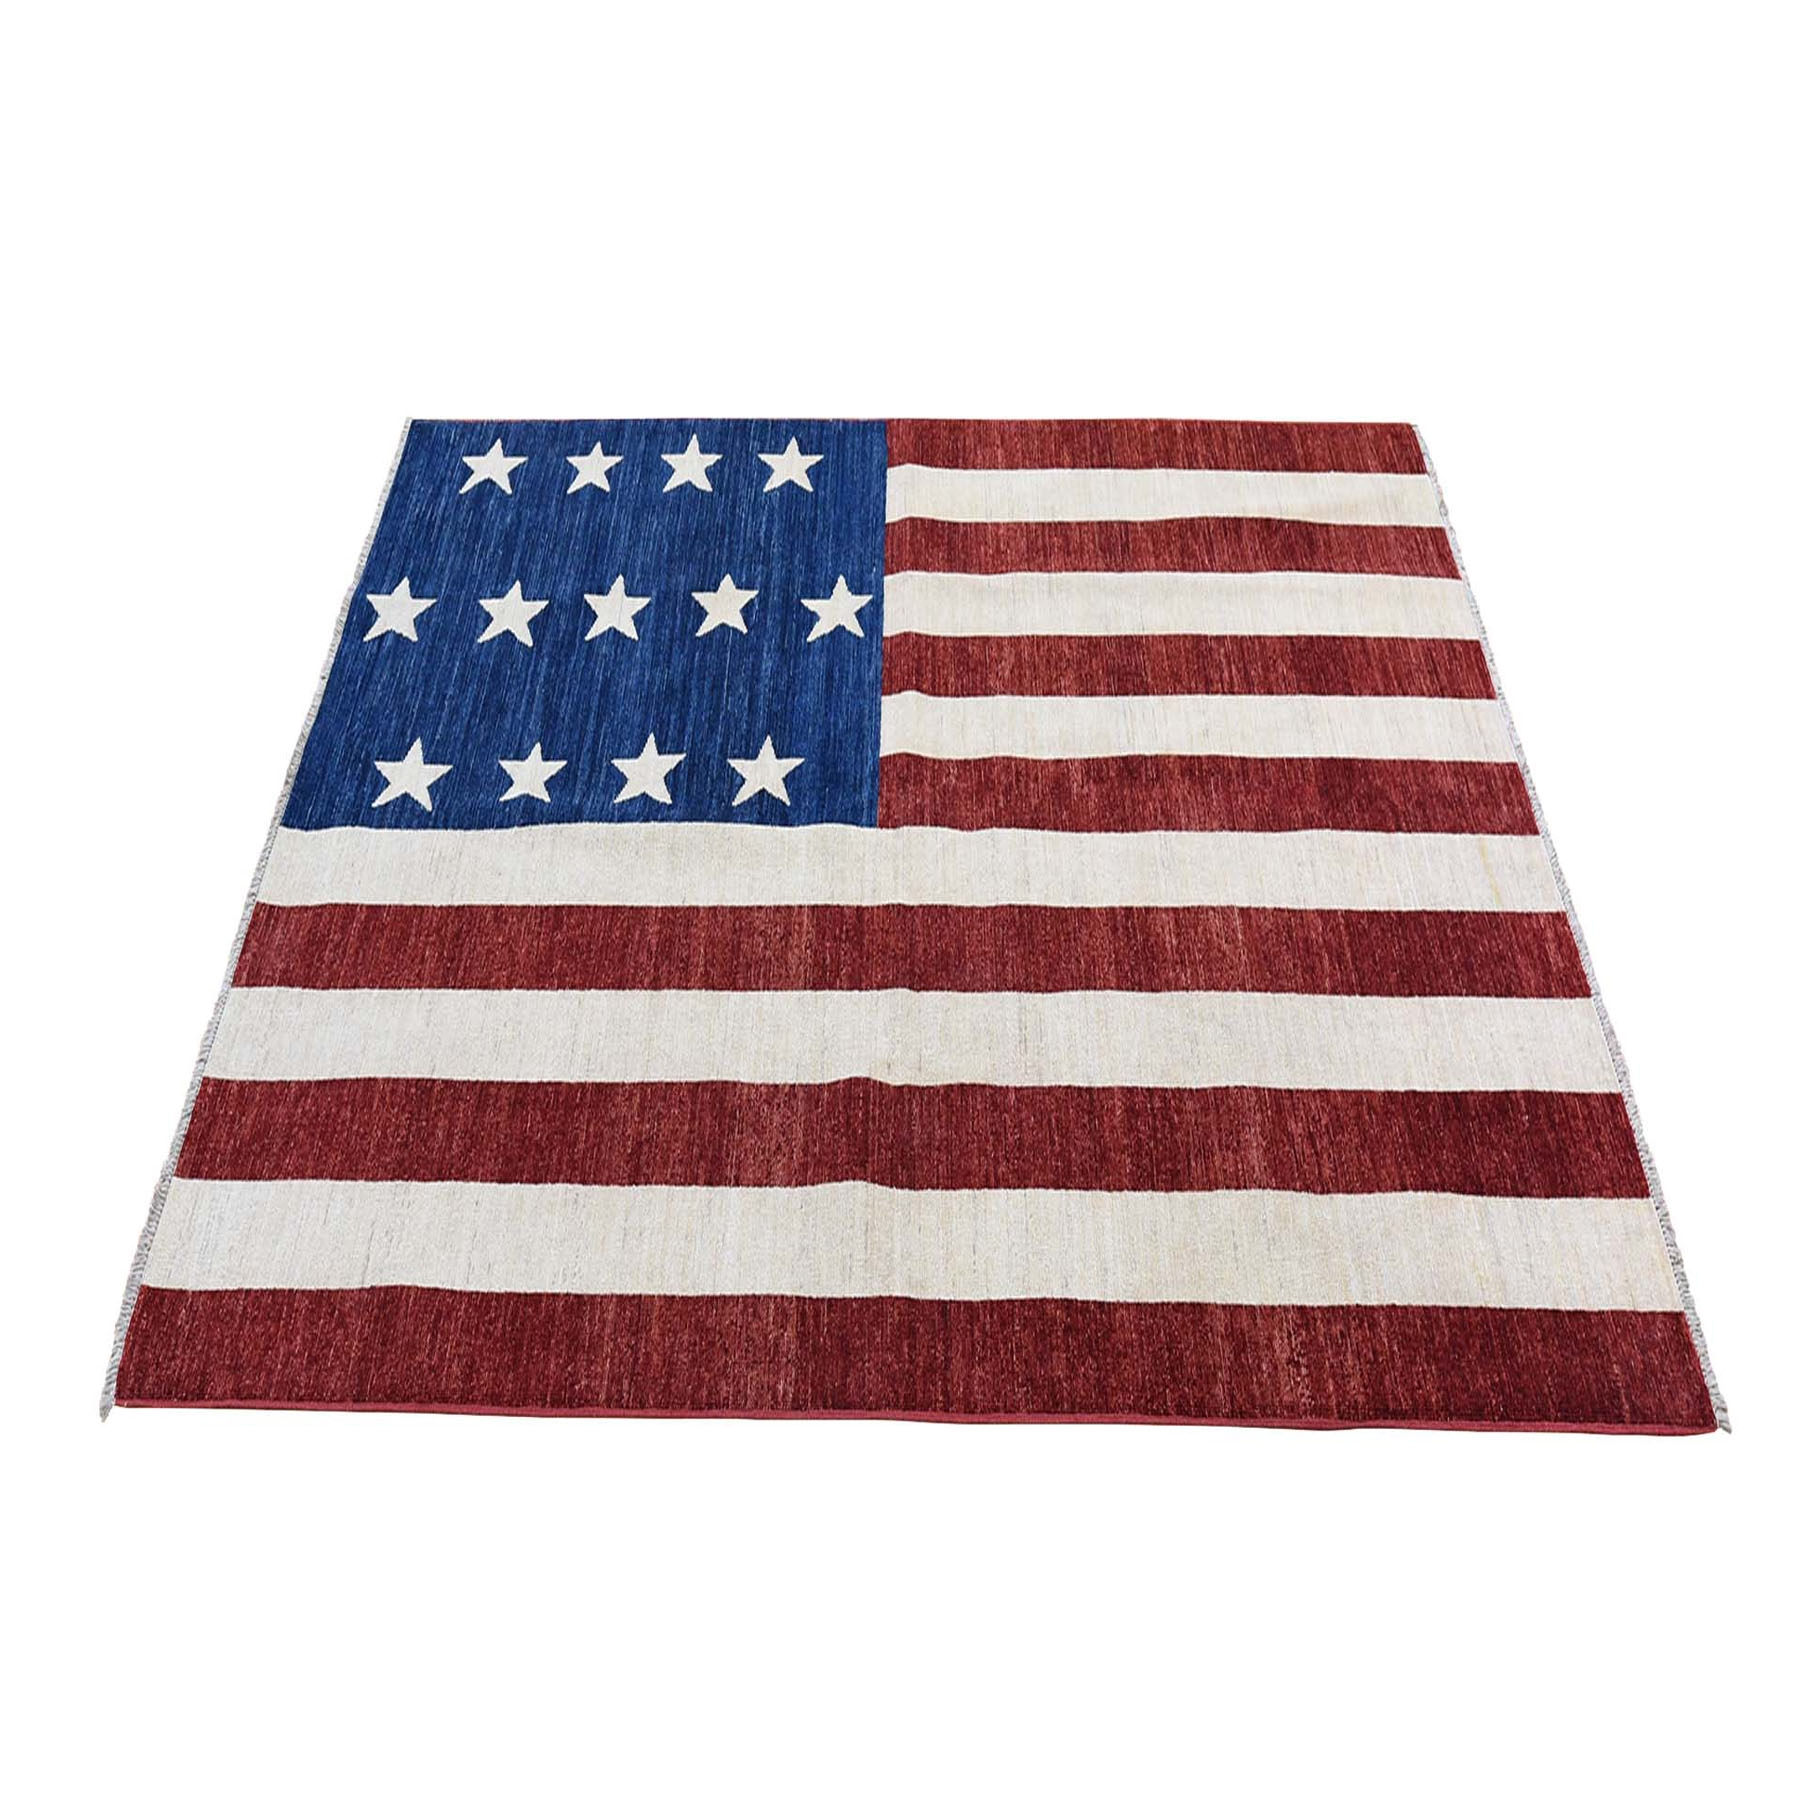 5'x7' Pure Wool Vintage Look American History Hand Woven Flag Design Wall Hanging Rug